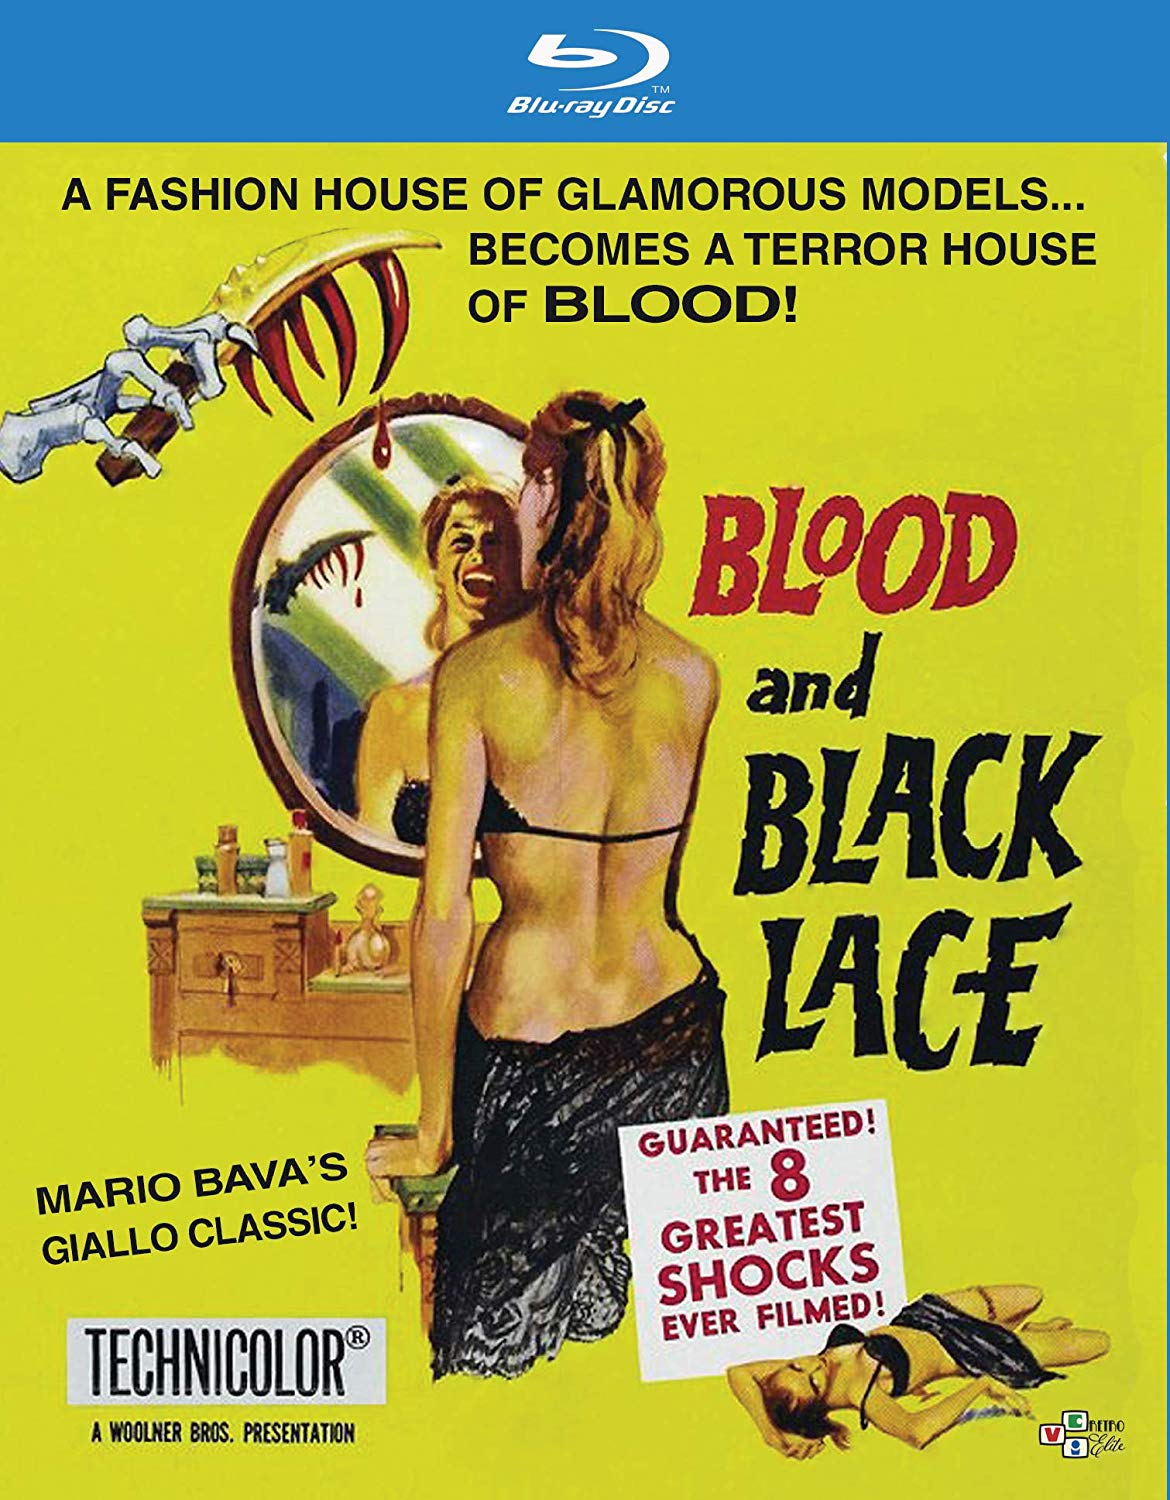 blood and black lace vci blu-ray